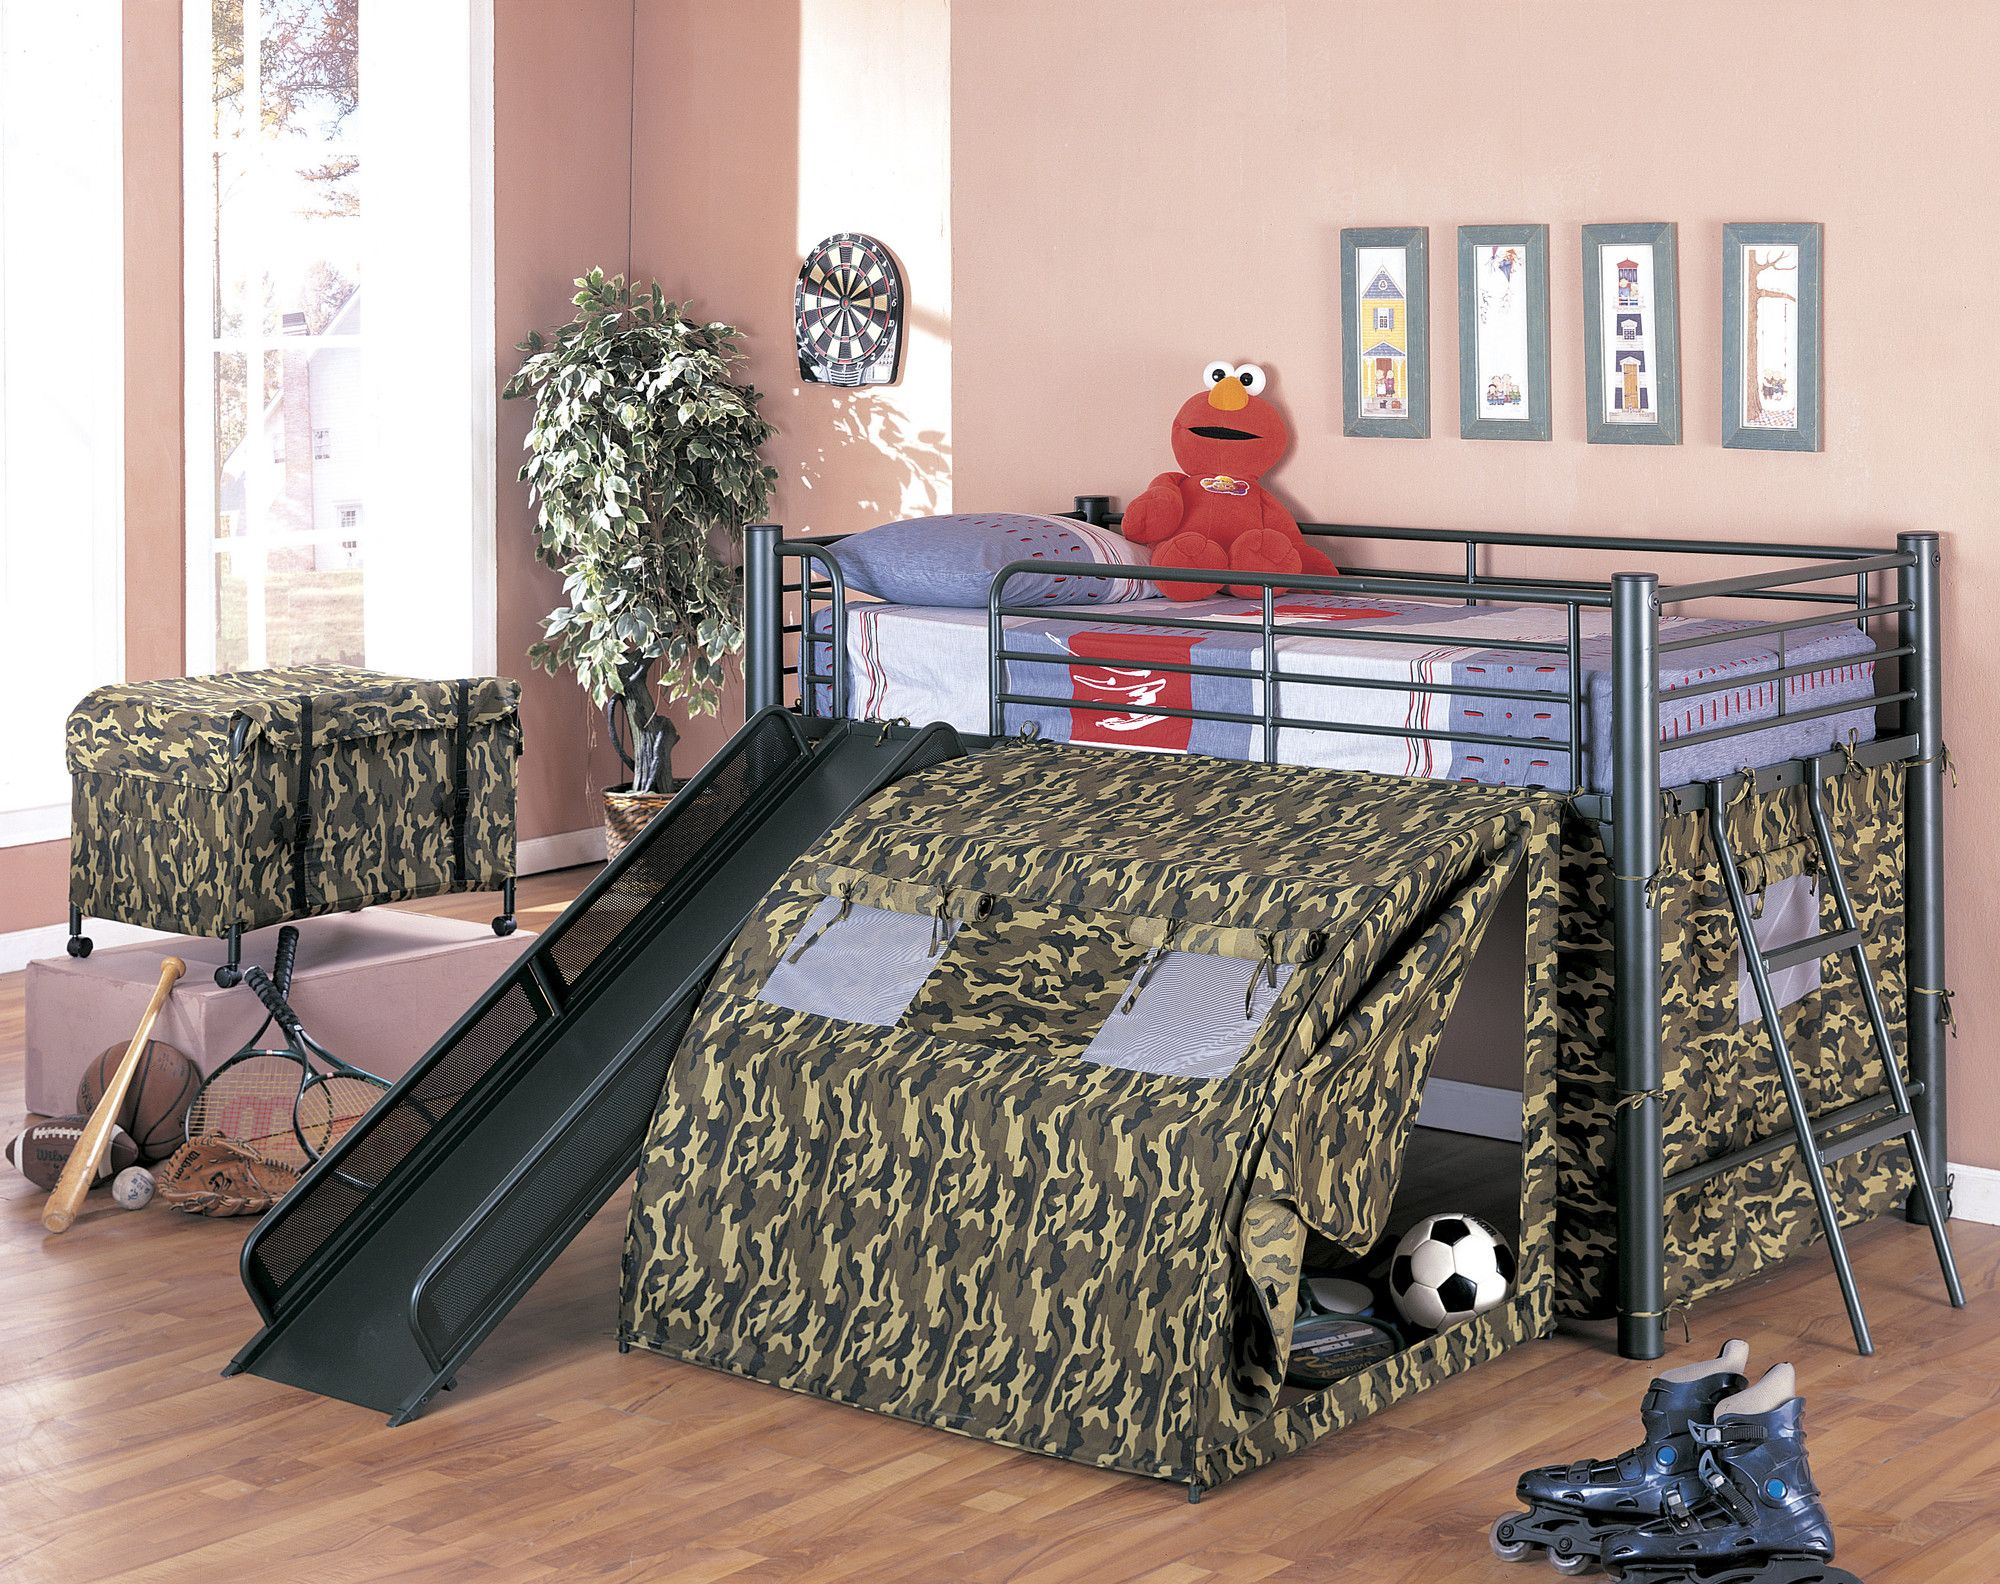 G.I Twin Low Loft Bed with Slide and Tent | Wayfair